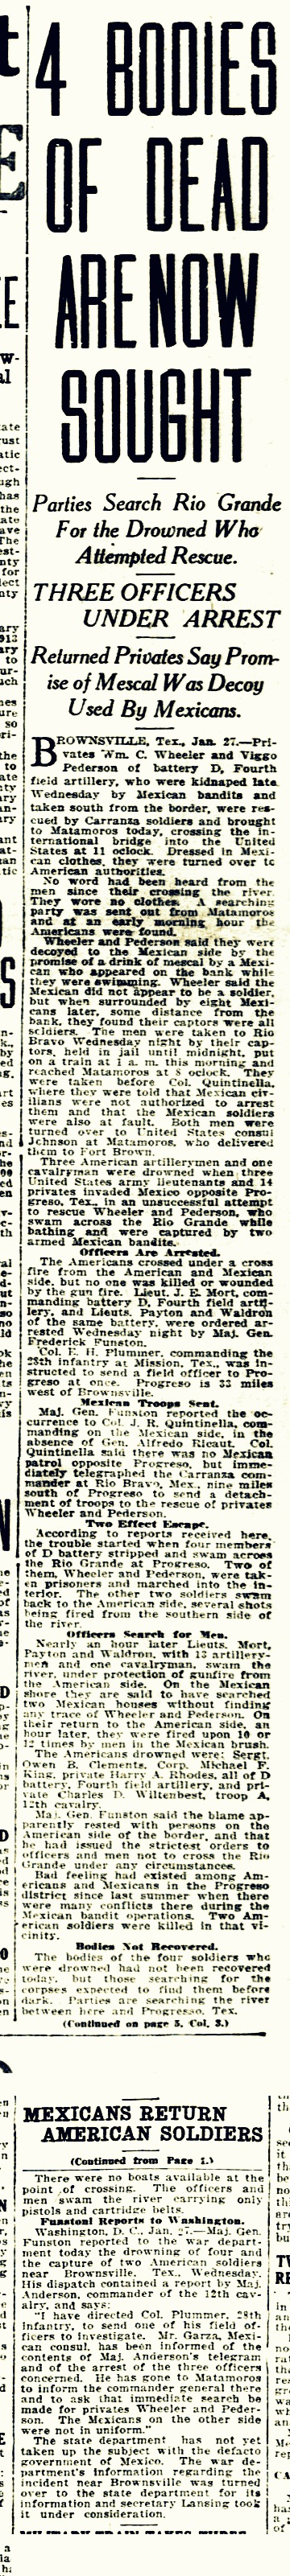 El Paso Herald, Thursday Evening, January 27, 1916, El Paso, TX. Owen Leonard Clements drowned along with three other soldiers.